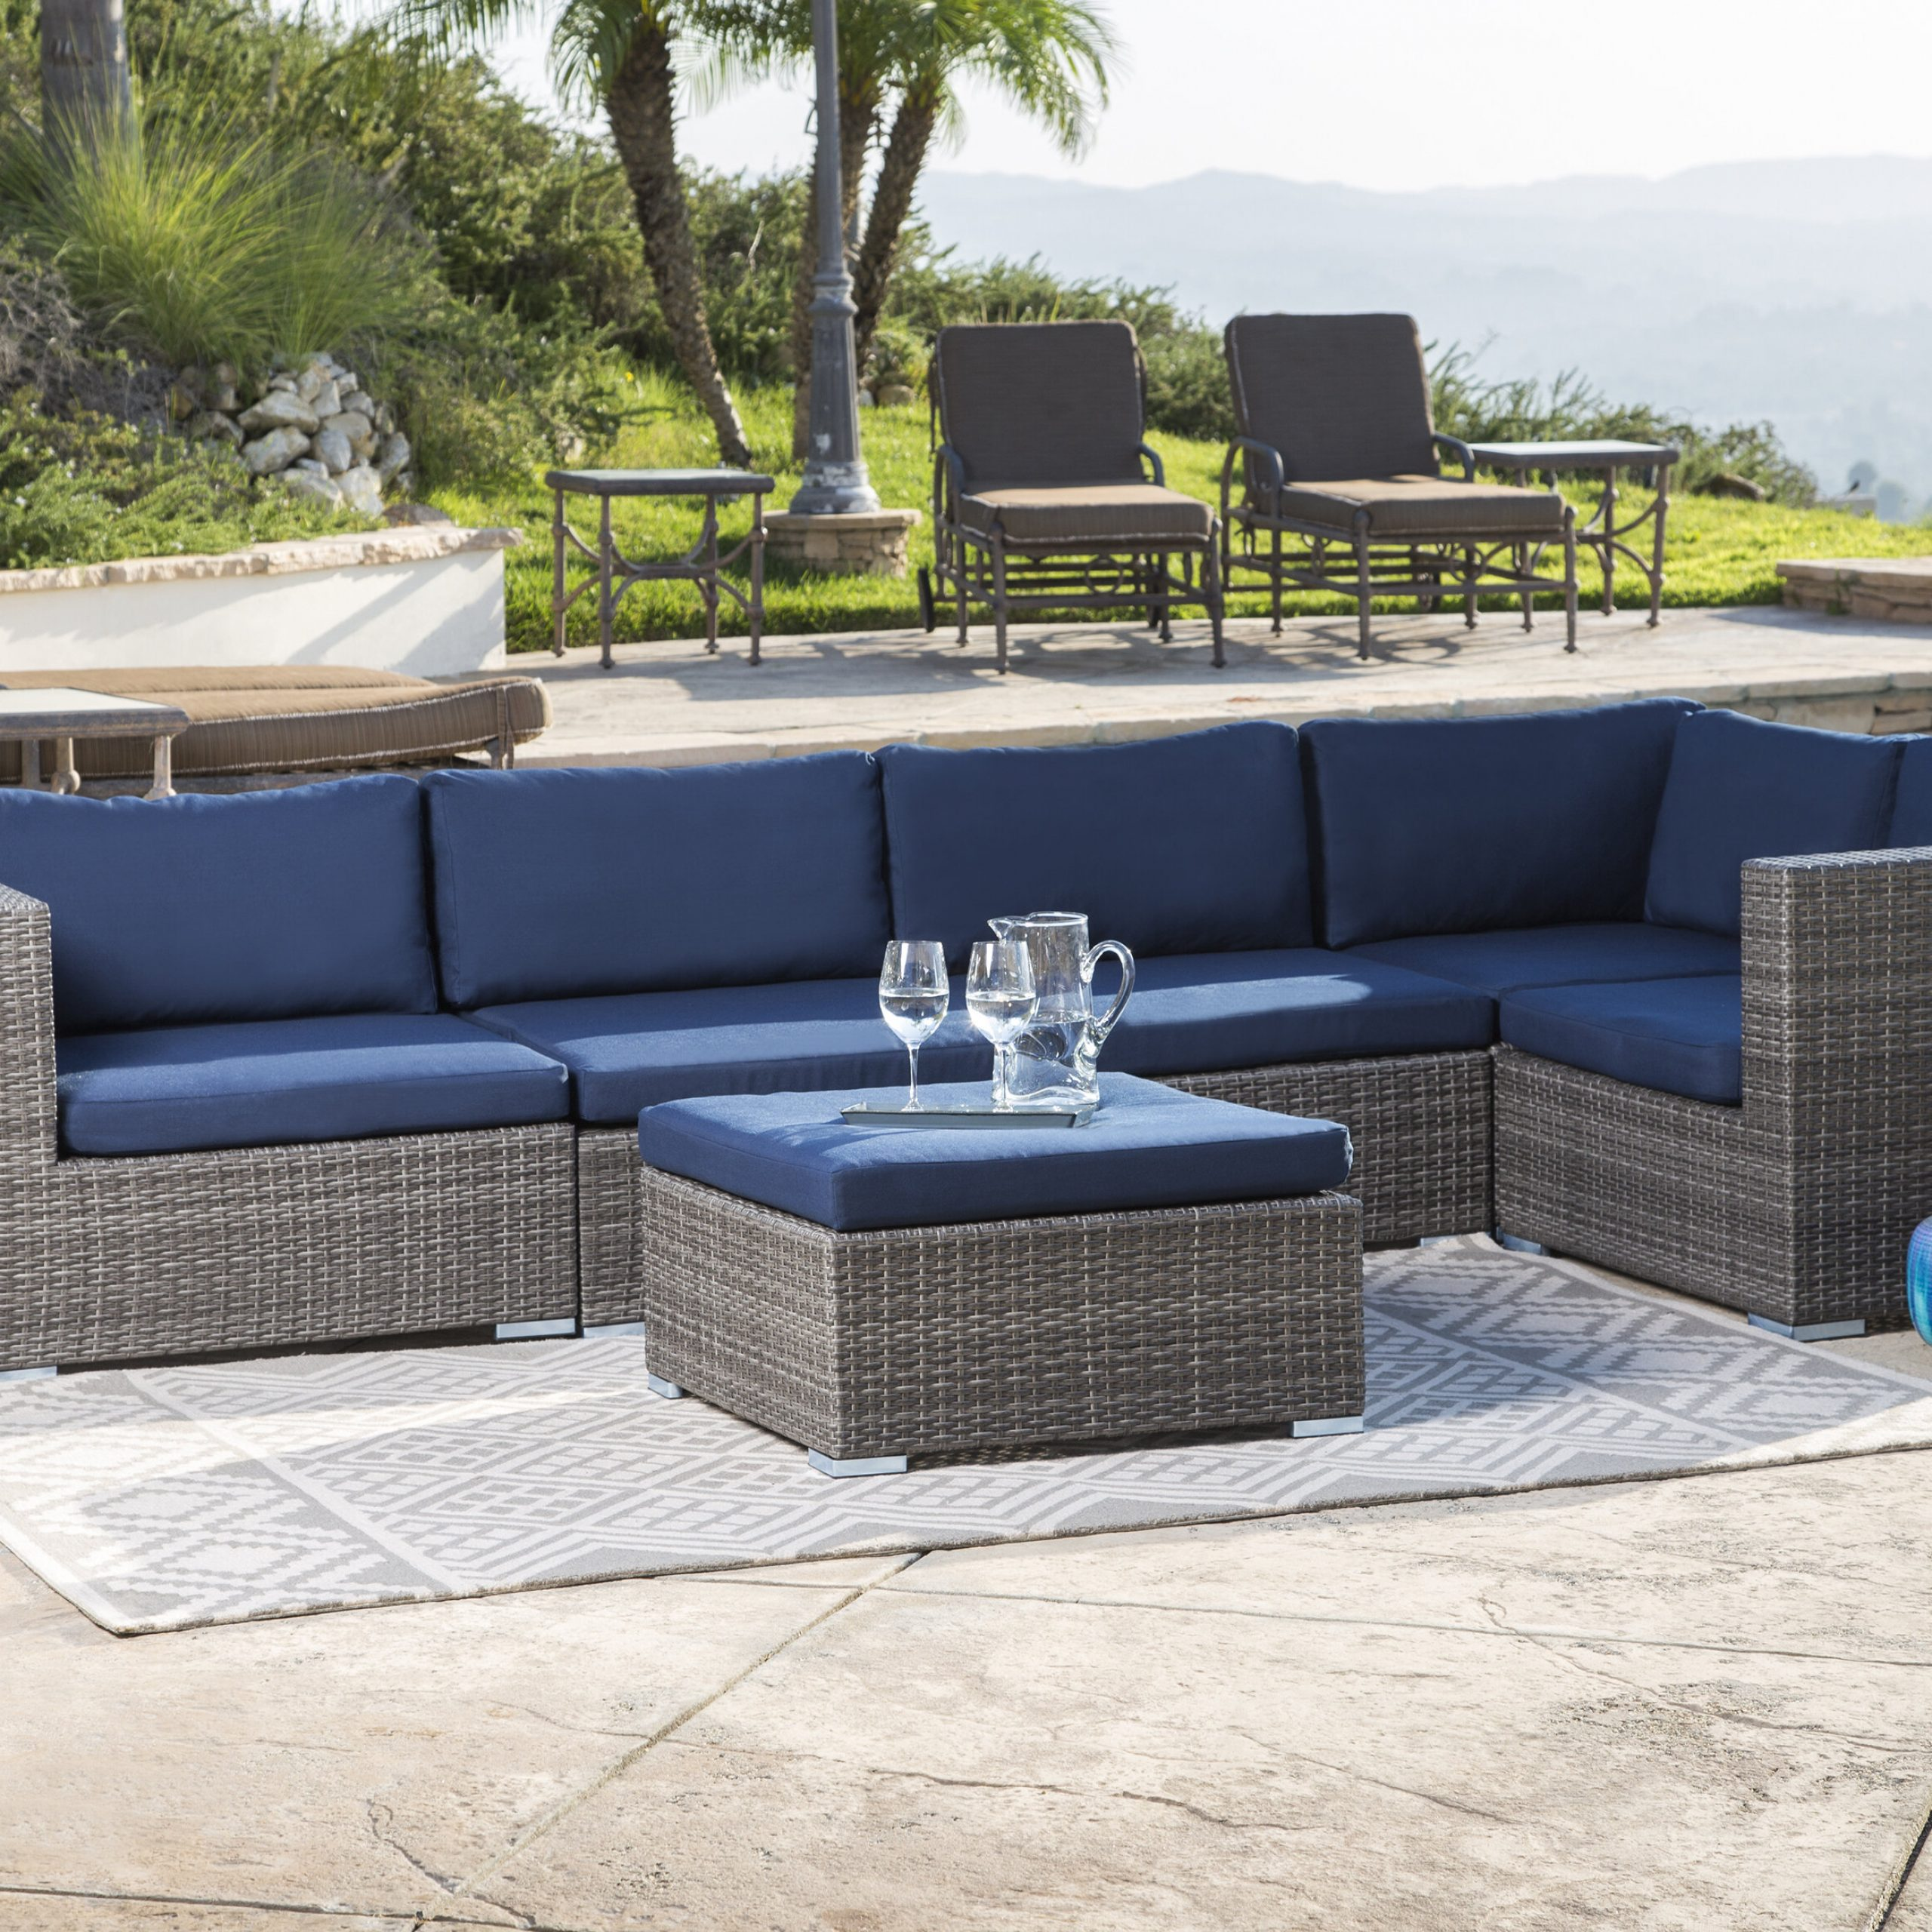 Ostrowski Patio Sectional With Cushions For Famous Honeycutt Patio Sofas With Cushions (View 15 of 25)